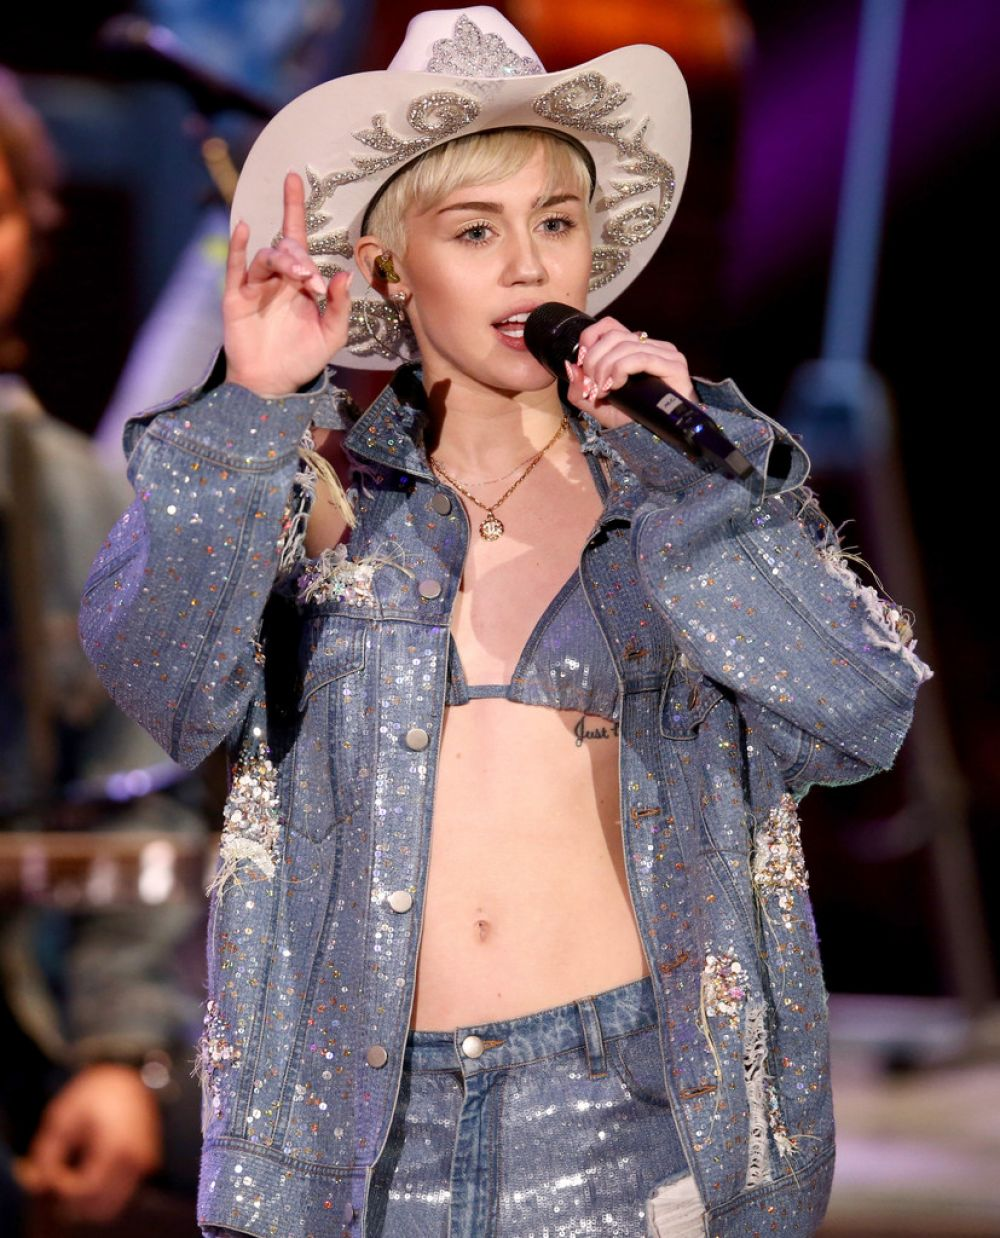 MILEY CYRUS Perofrms at MTV Unplugged in Hollywood ...